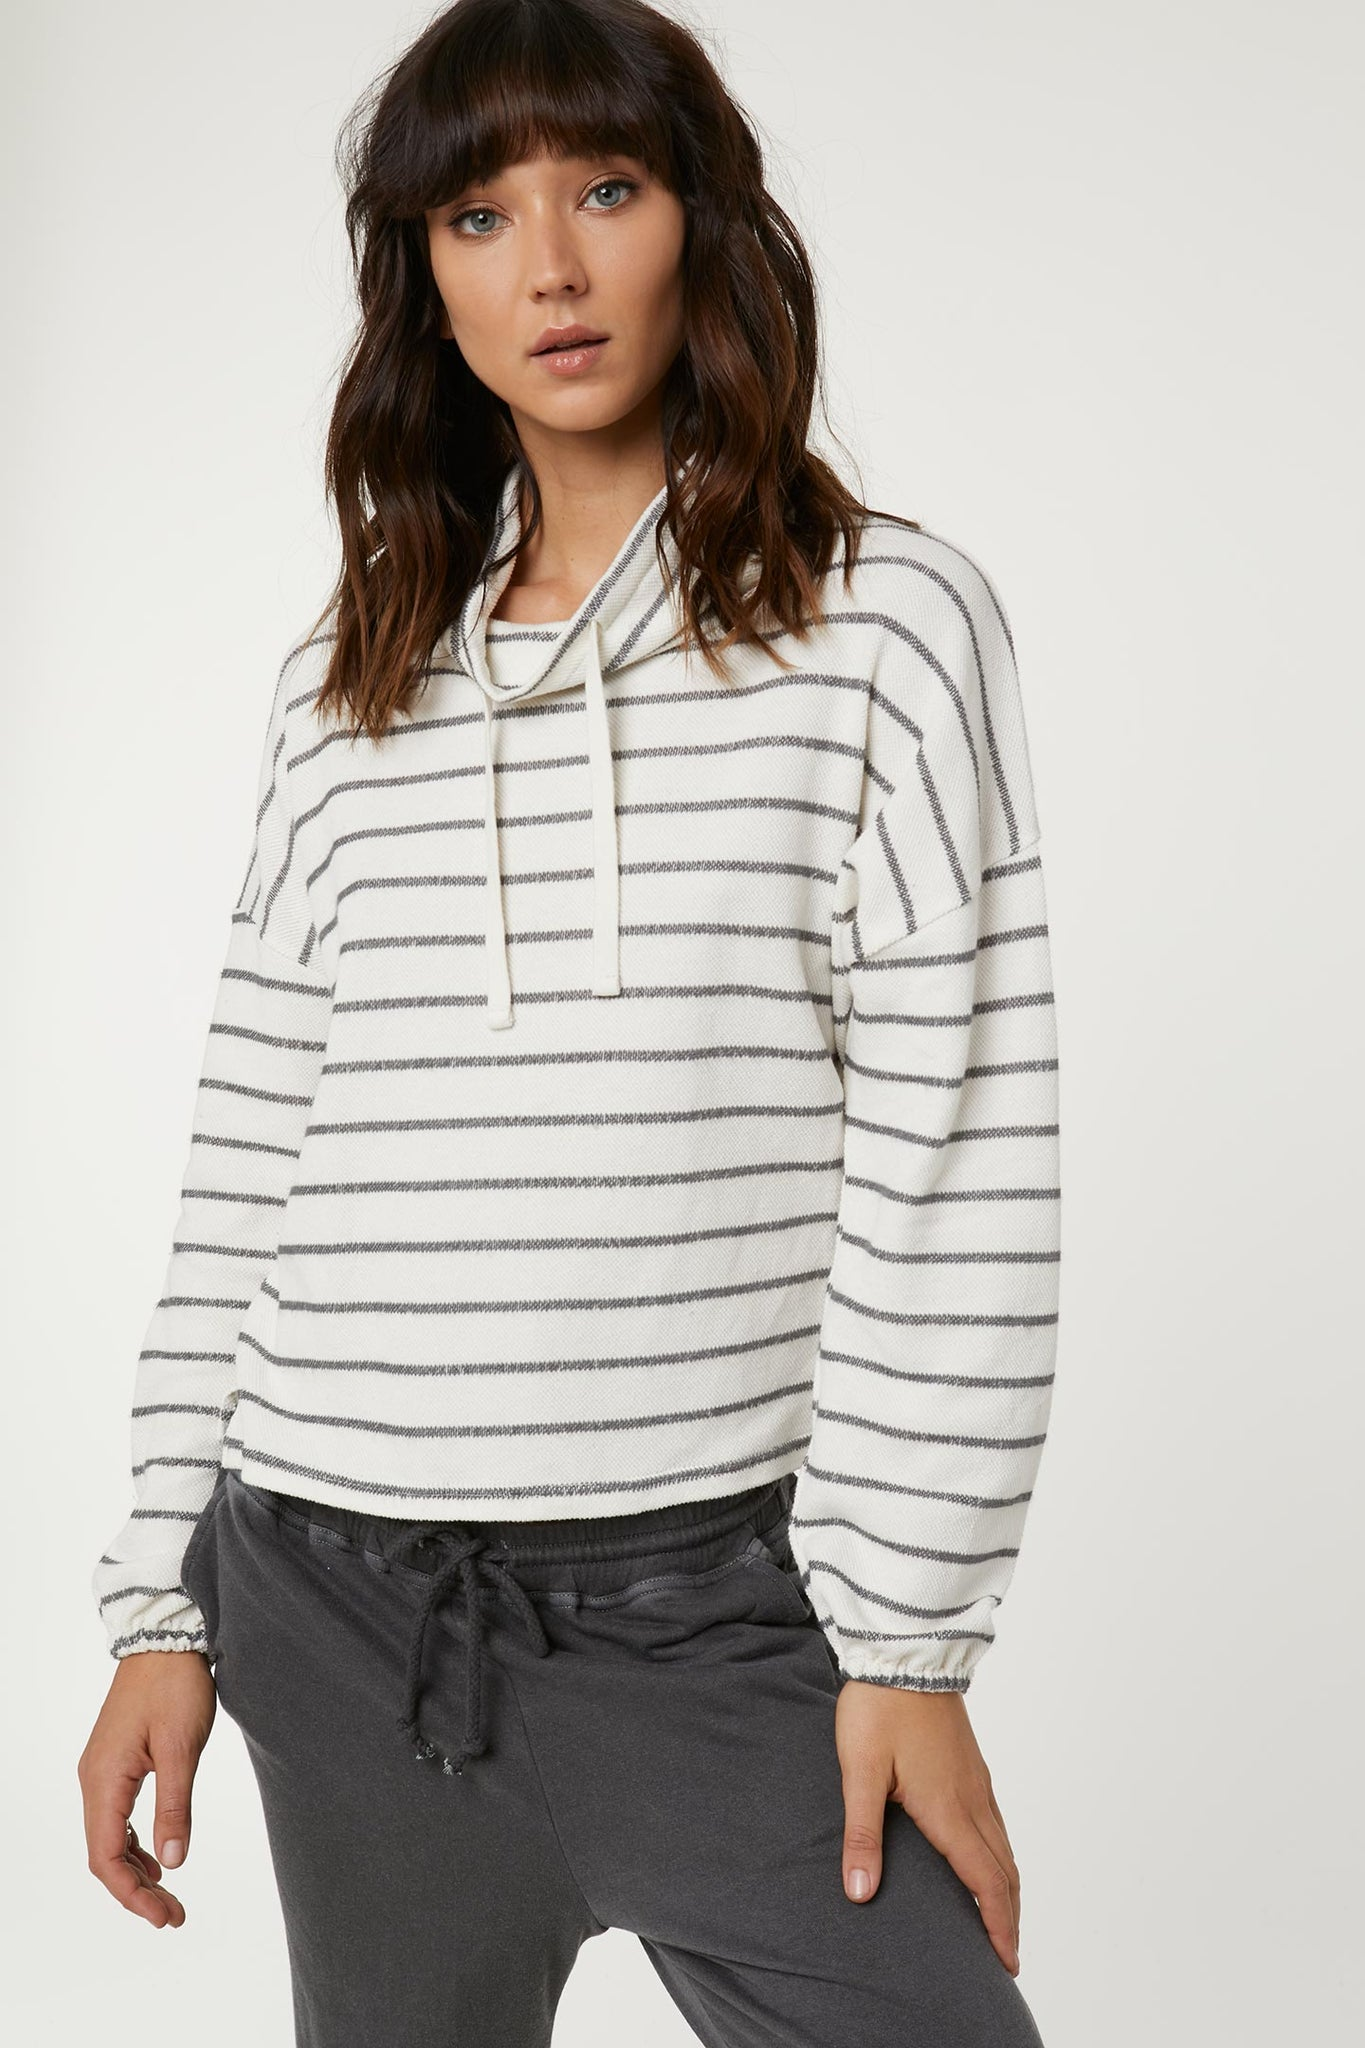 Cherie Pullover | O'Neill Clothing USA